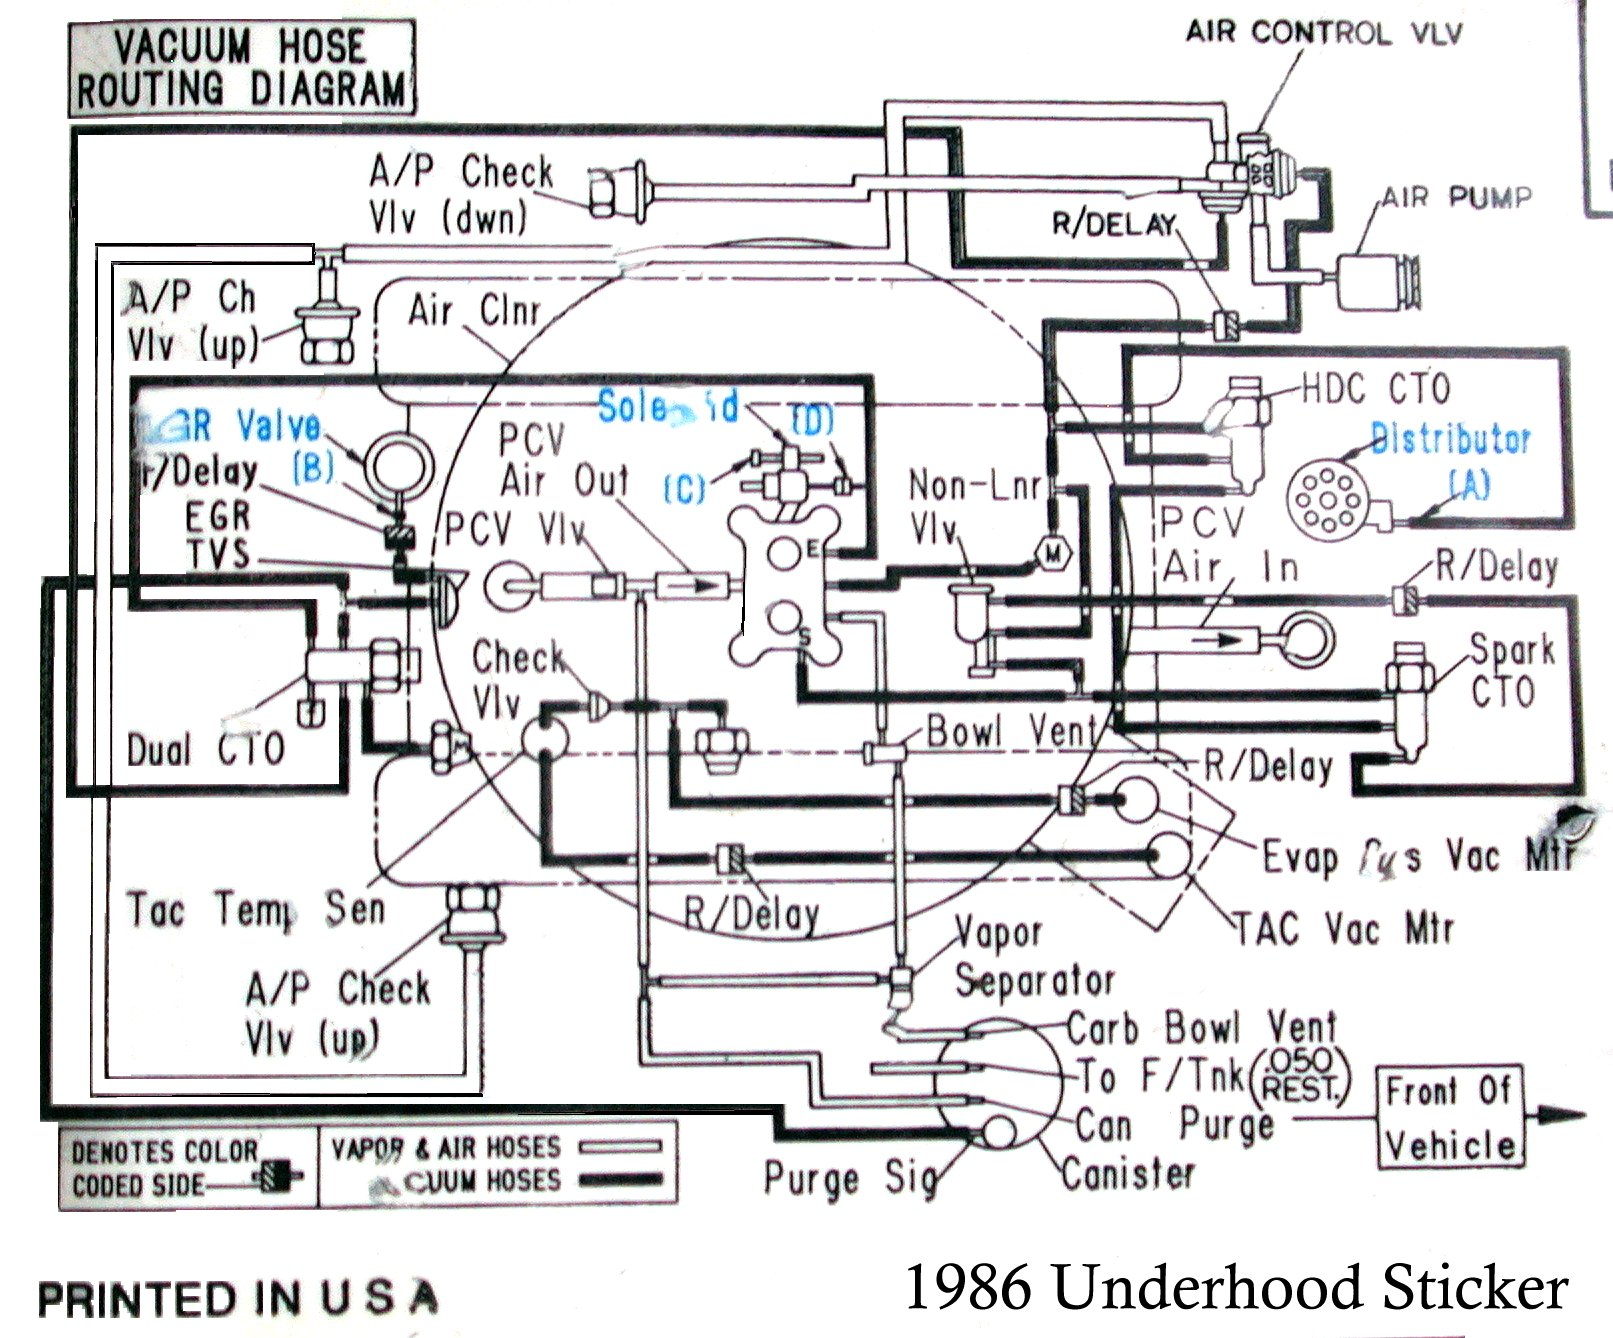 hight resolution of tom oljeep collins fsj vacuum layout page jeep grand cherokee vacuum hose diagram 1986